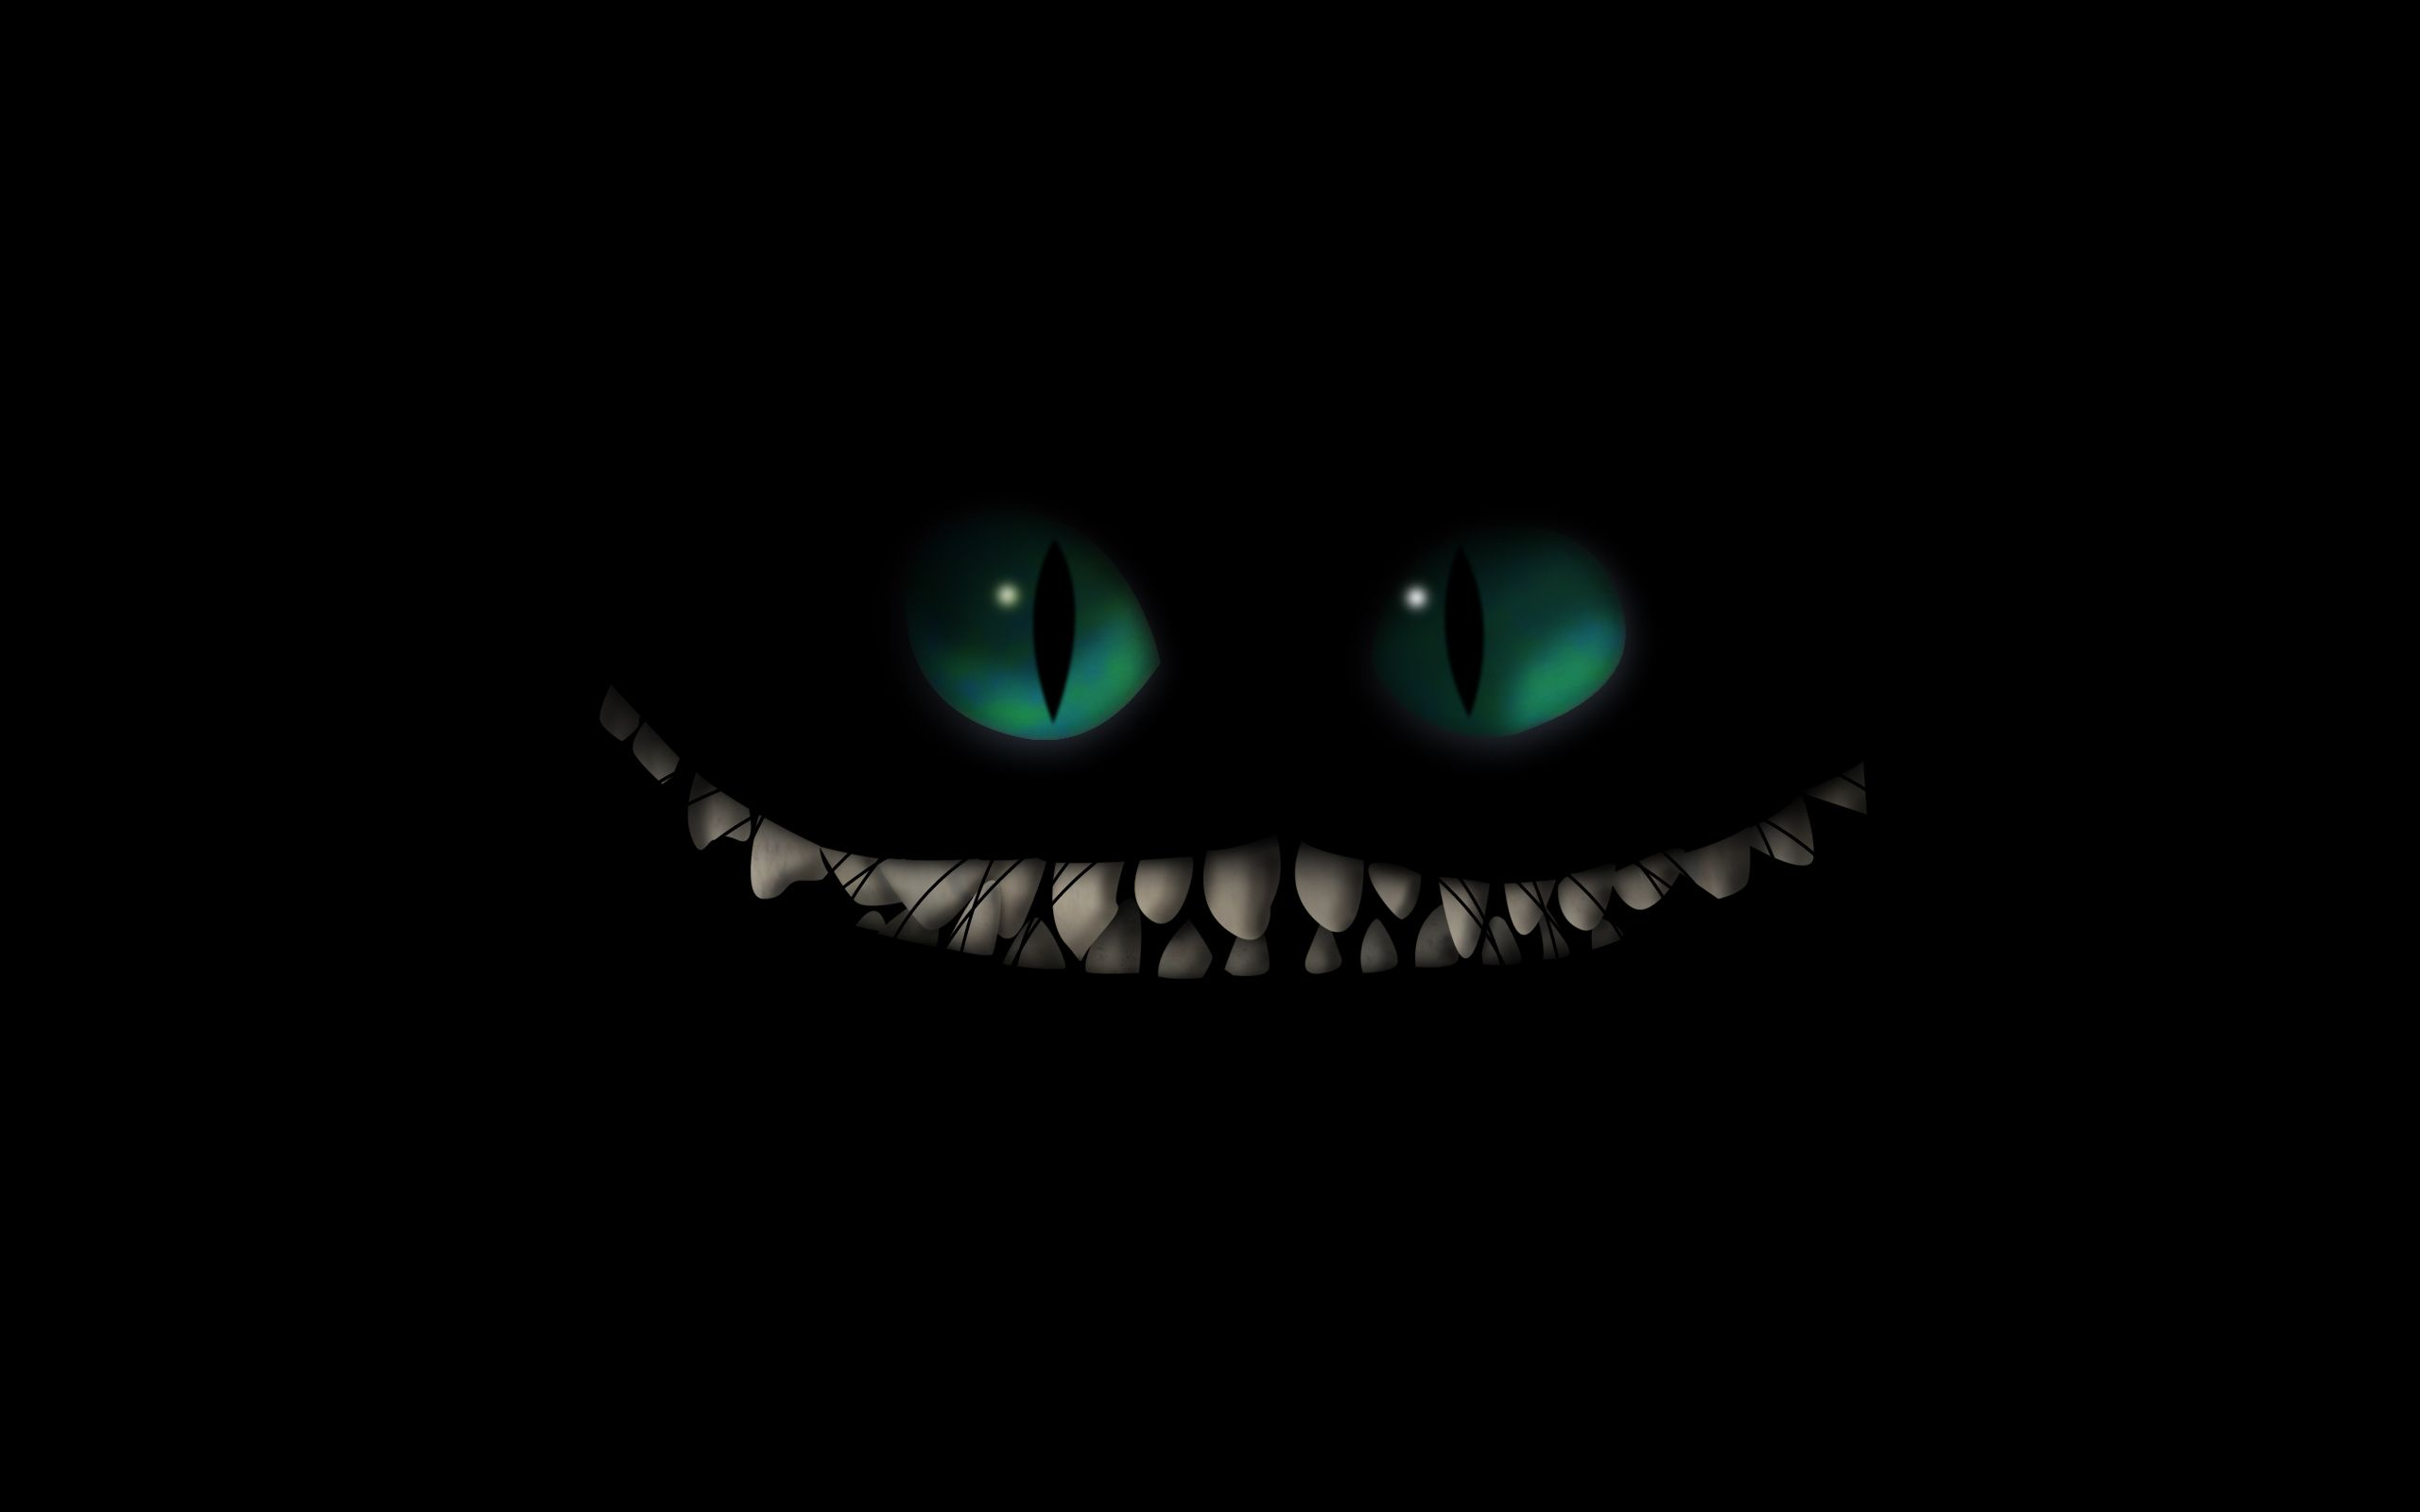 Download Anime Picture 2560x1600 0 17mb With Alice In Wonderland Cheshire Cat Highres Widescreen Green Ey Scary Wallpaper Cheshire Cat Wallpaper Eyes Wallpaper